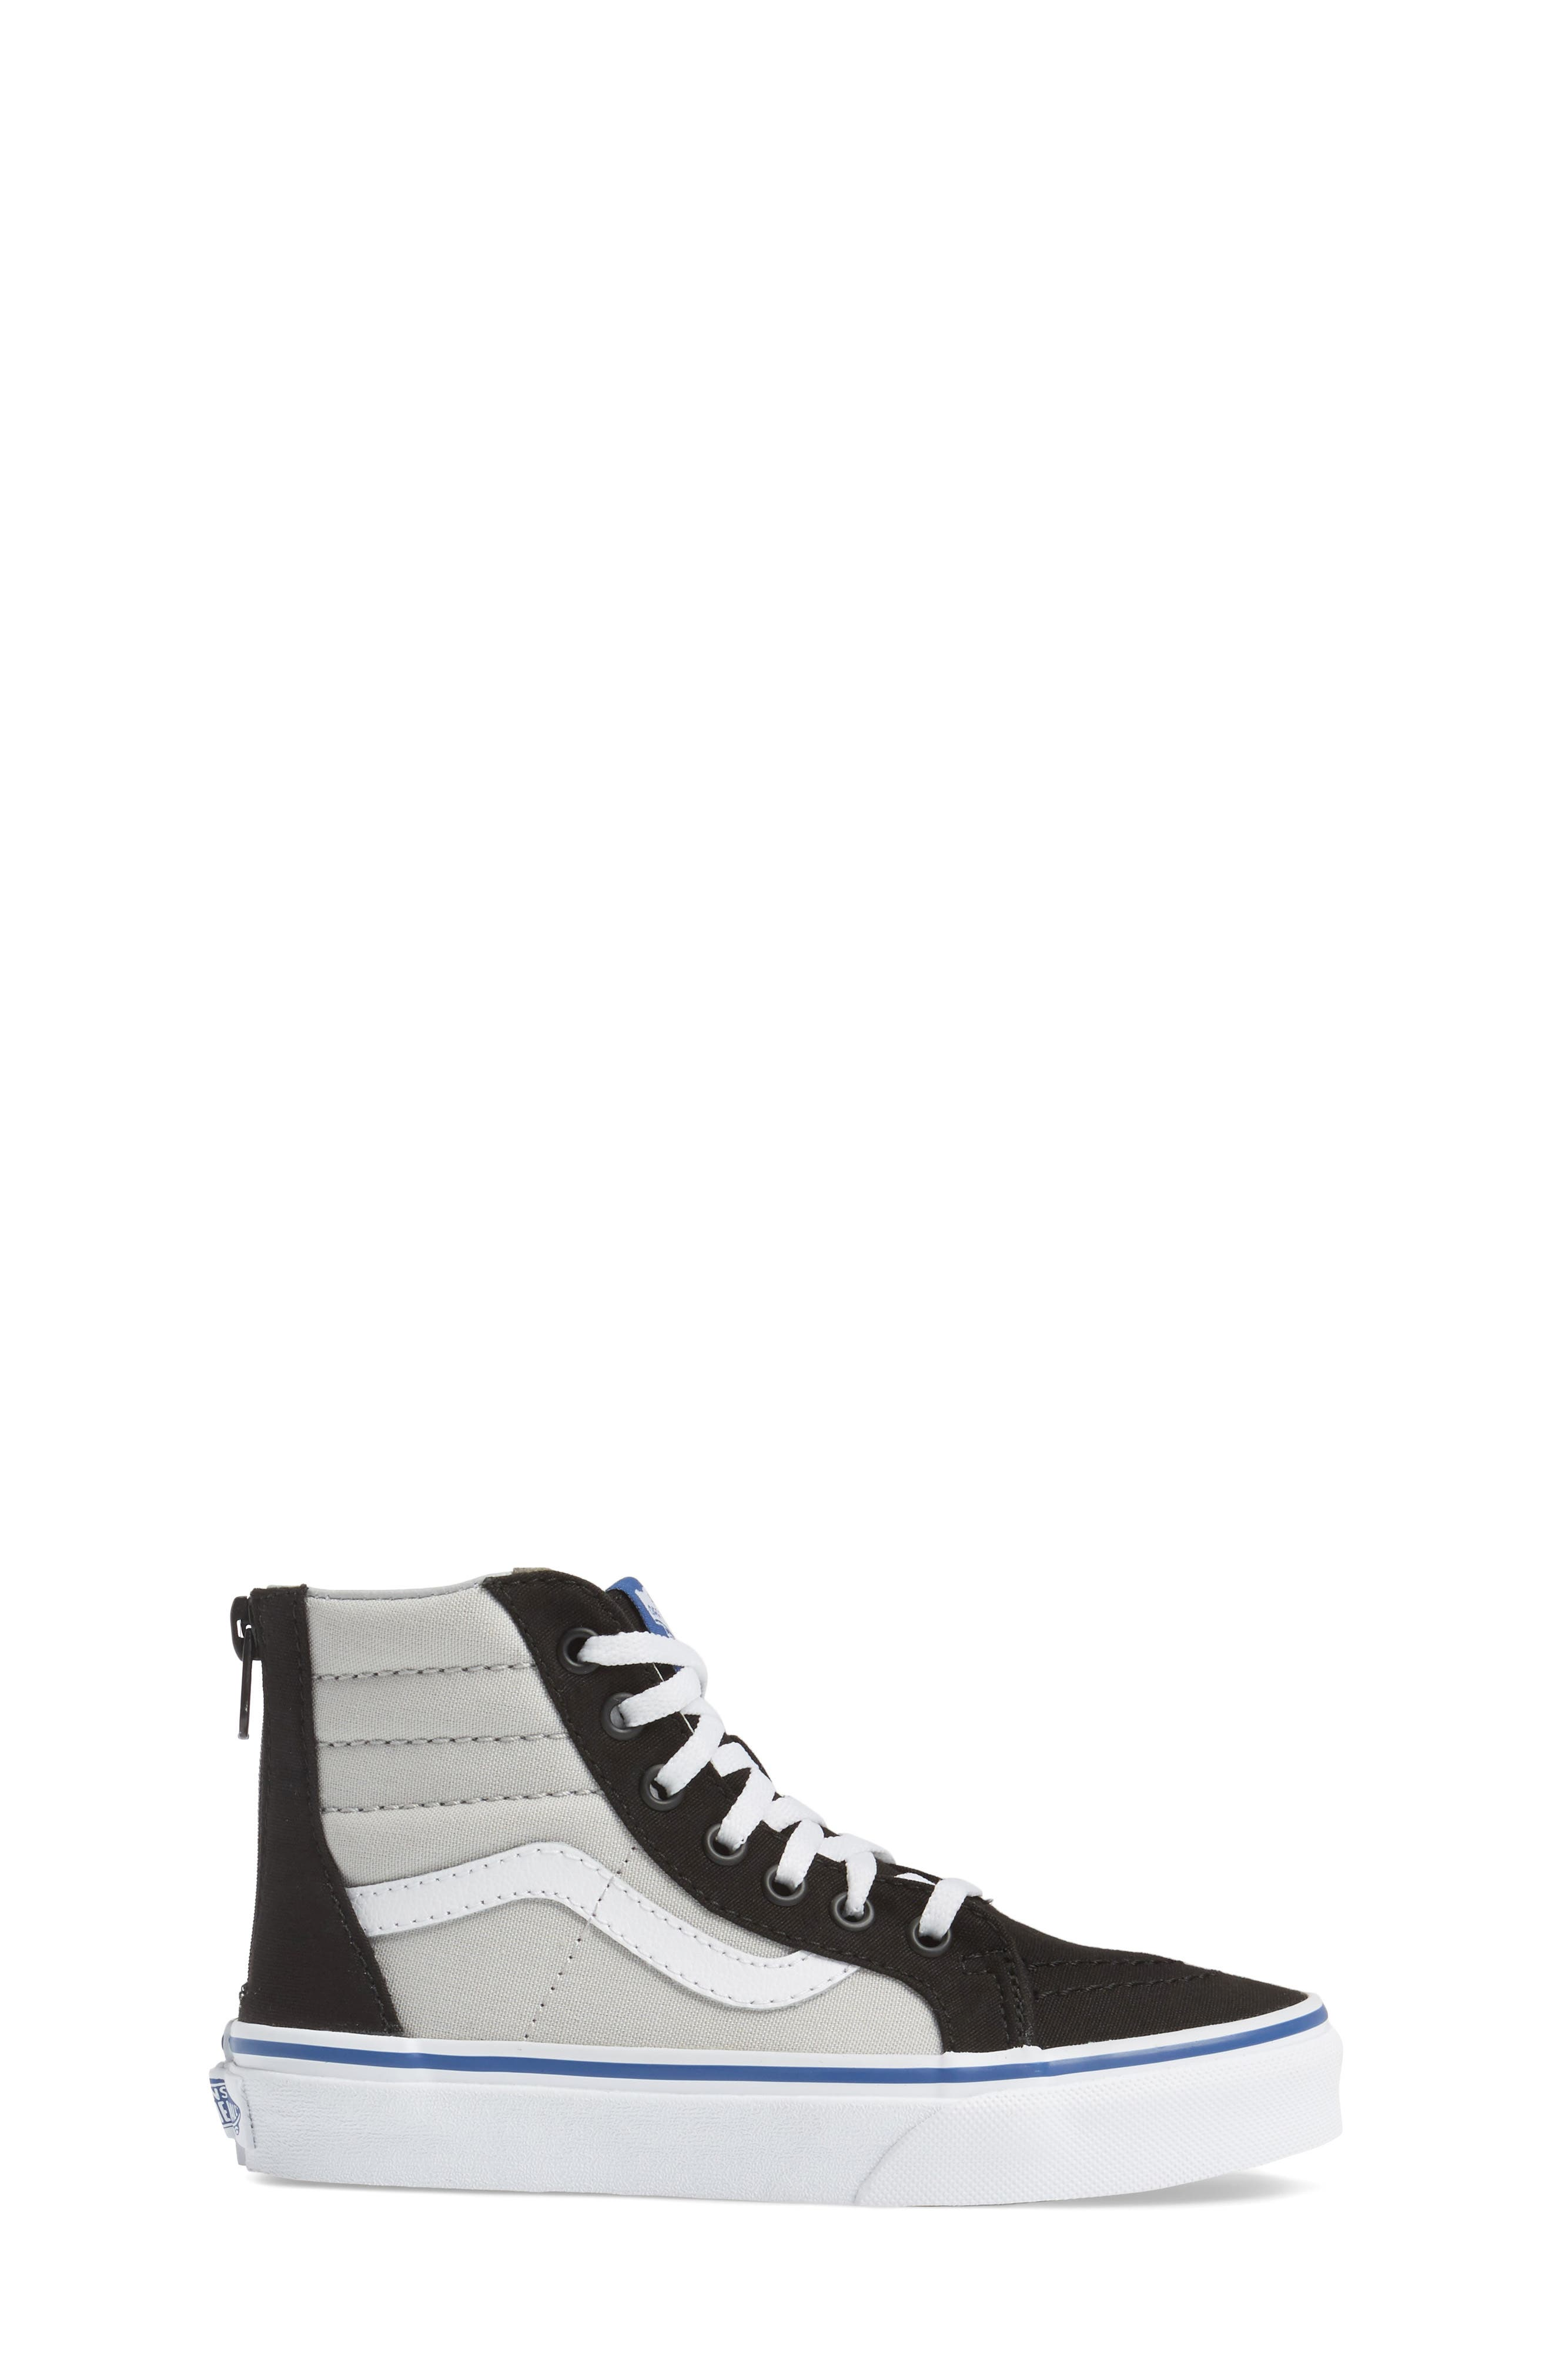 Alternate Image 3  - Vans SK8-Hi Zip Sneaker (Baby, Walker, Toddler, Little Kid & Big Kid)